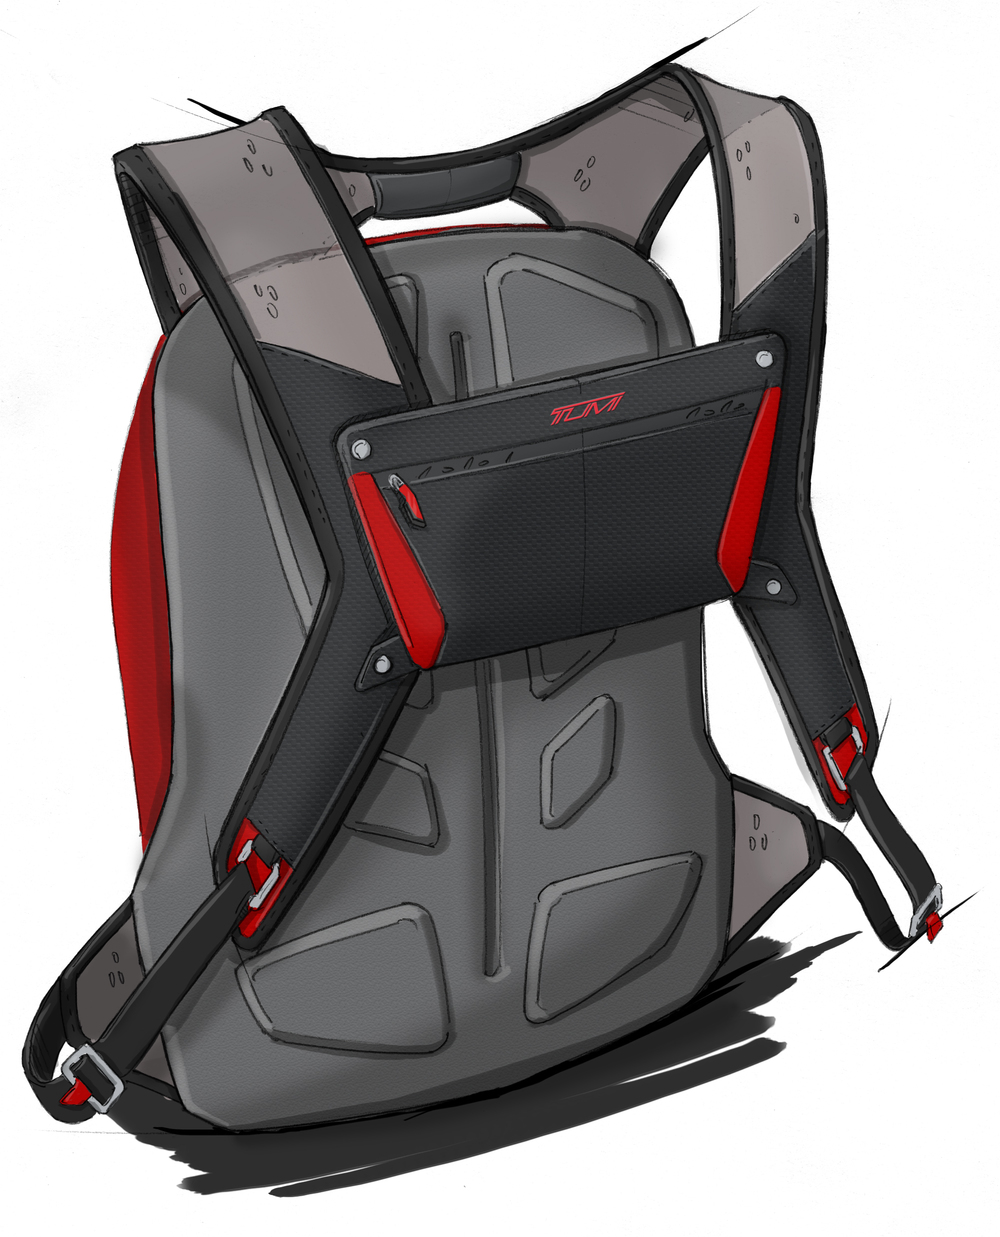 Ducati Backpack back panel Render.jpg